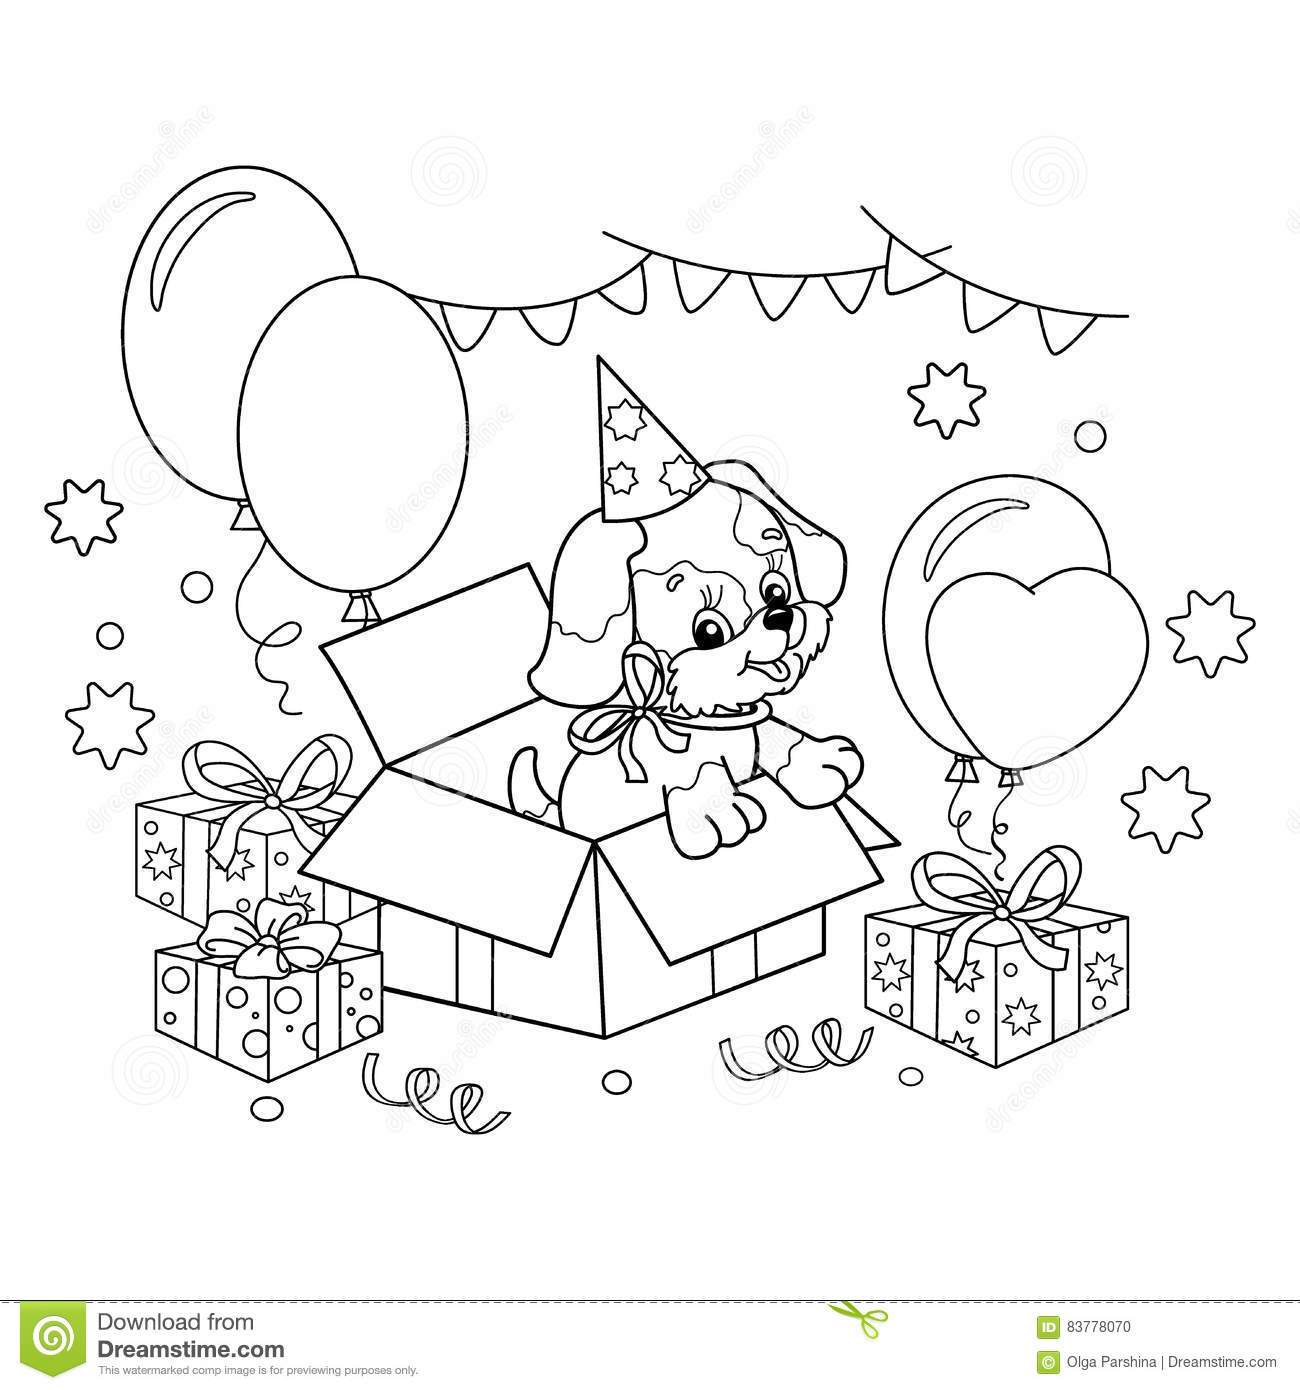 Coloring Page Outline Of Cute Puppy Cartoon Dog With Bow